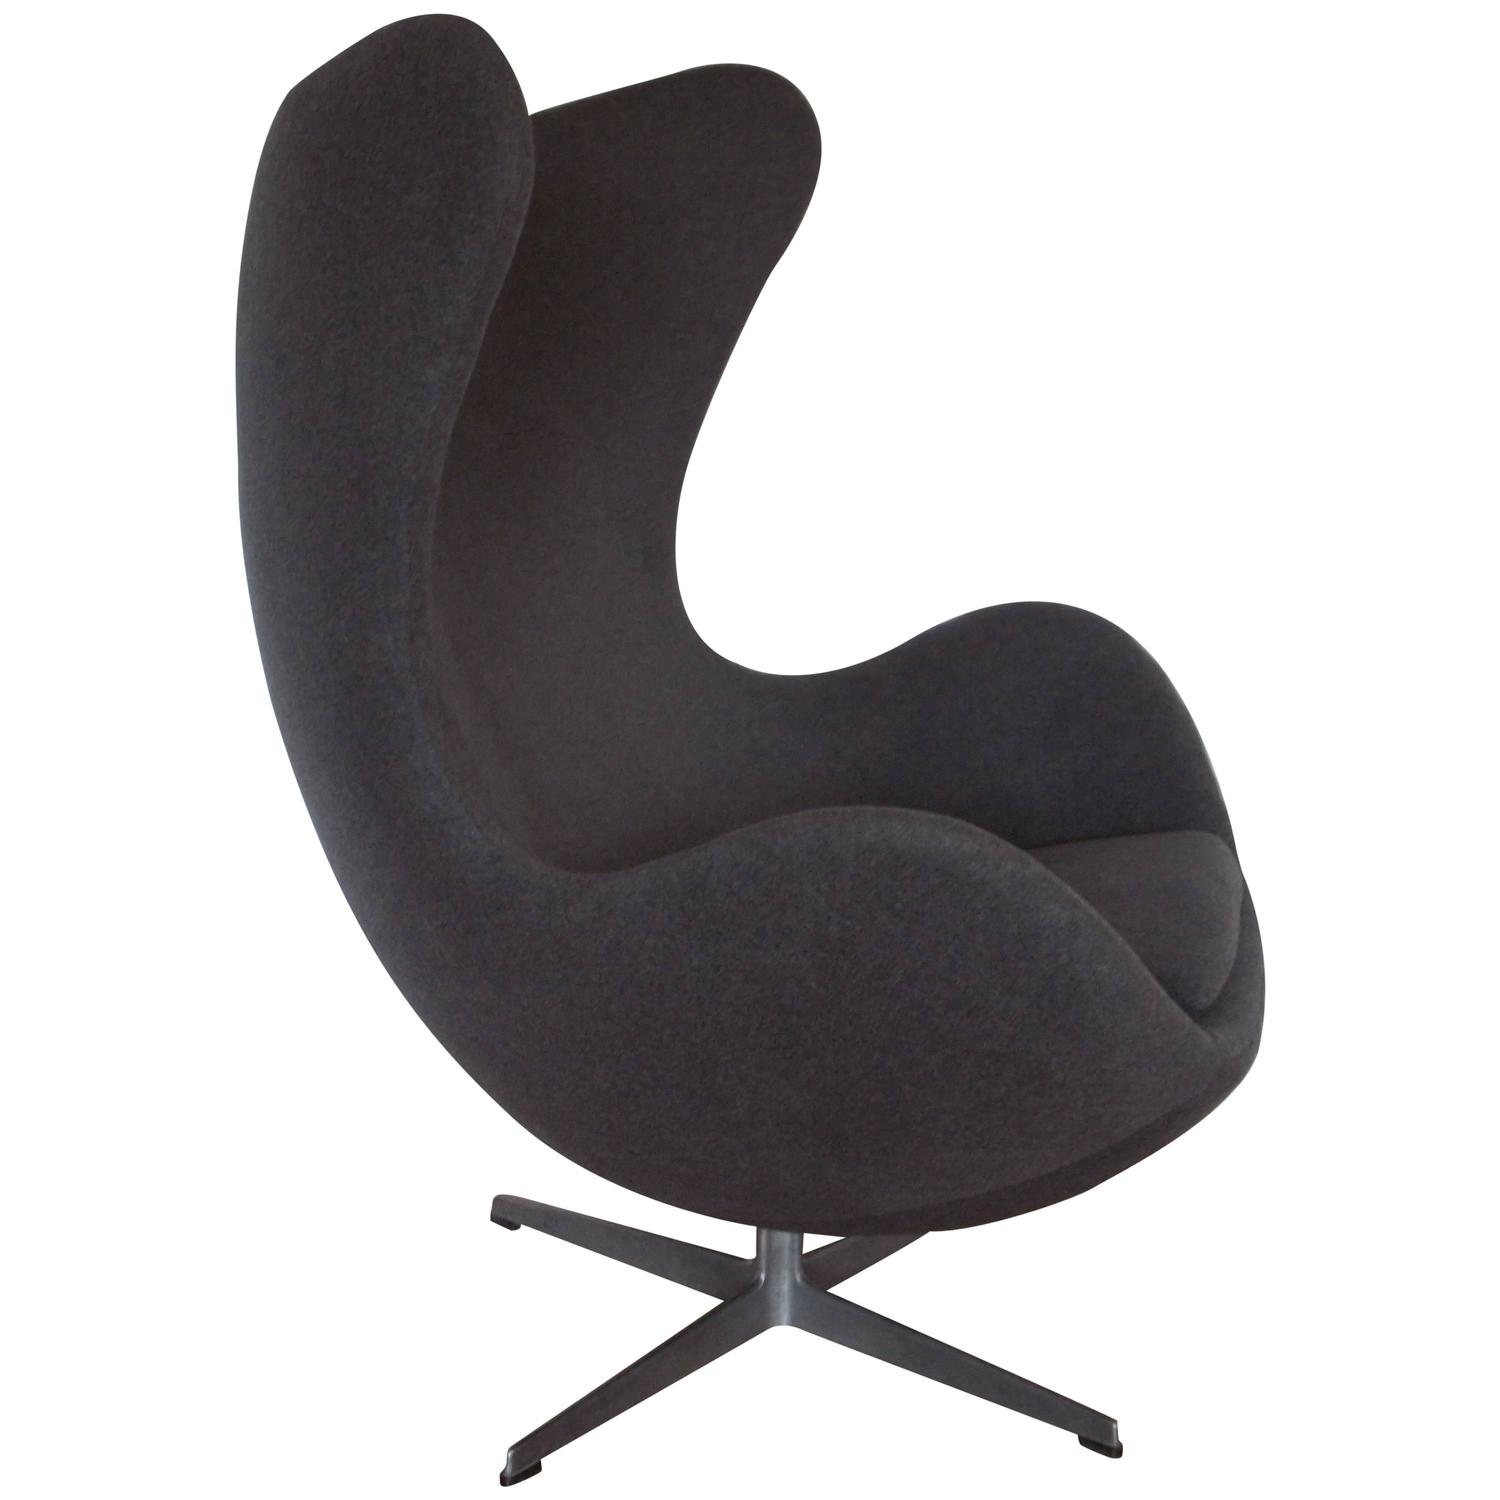 original vintage arne jacobsen egg chair for fritz hansen denmark for sale at 1stdibs. Black Bedroom Furniture Sets. Home Design Ideas